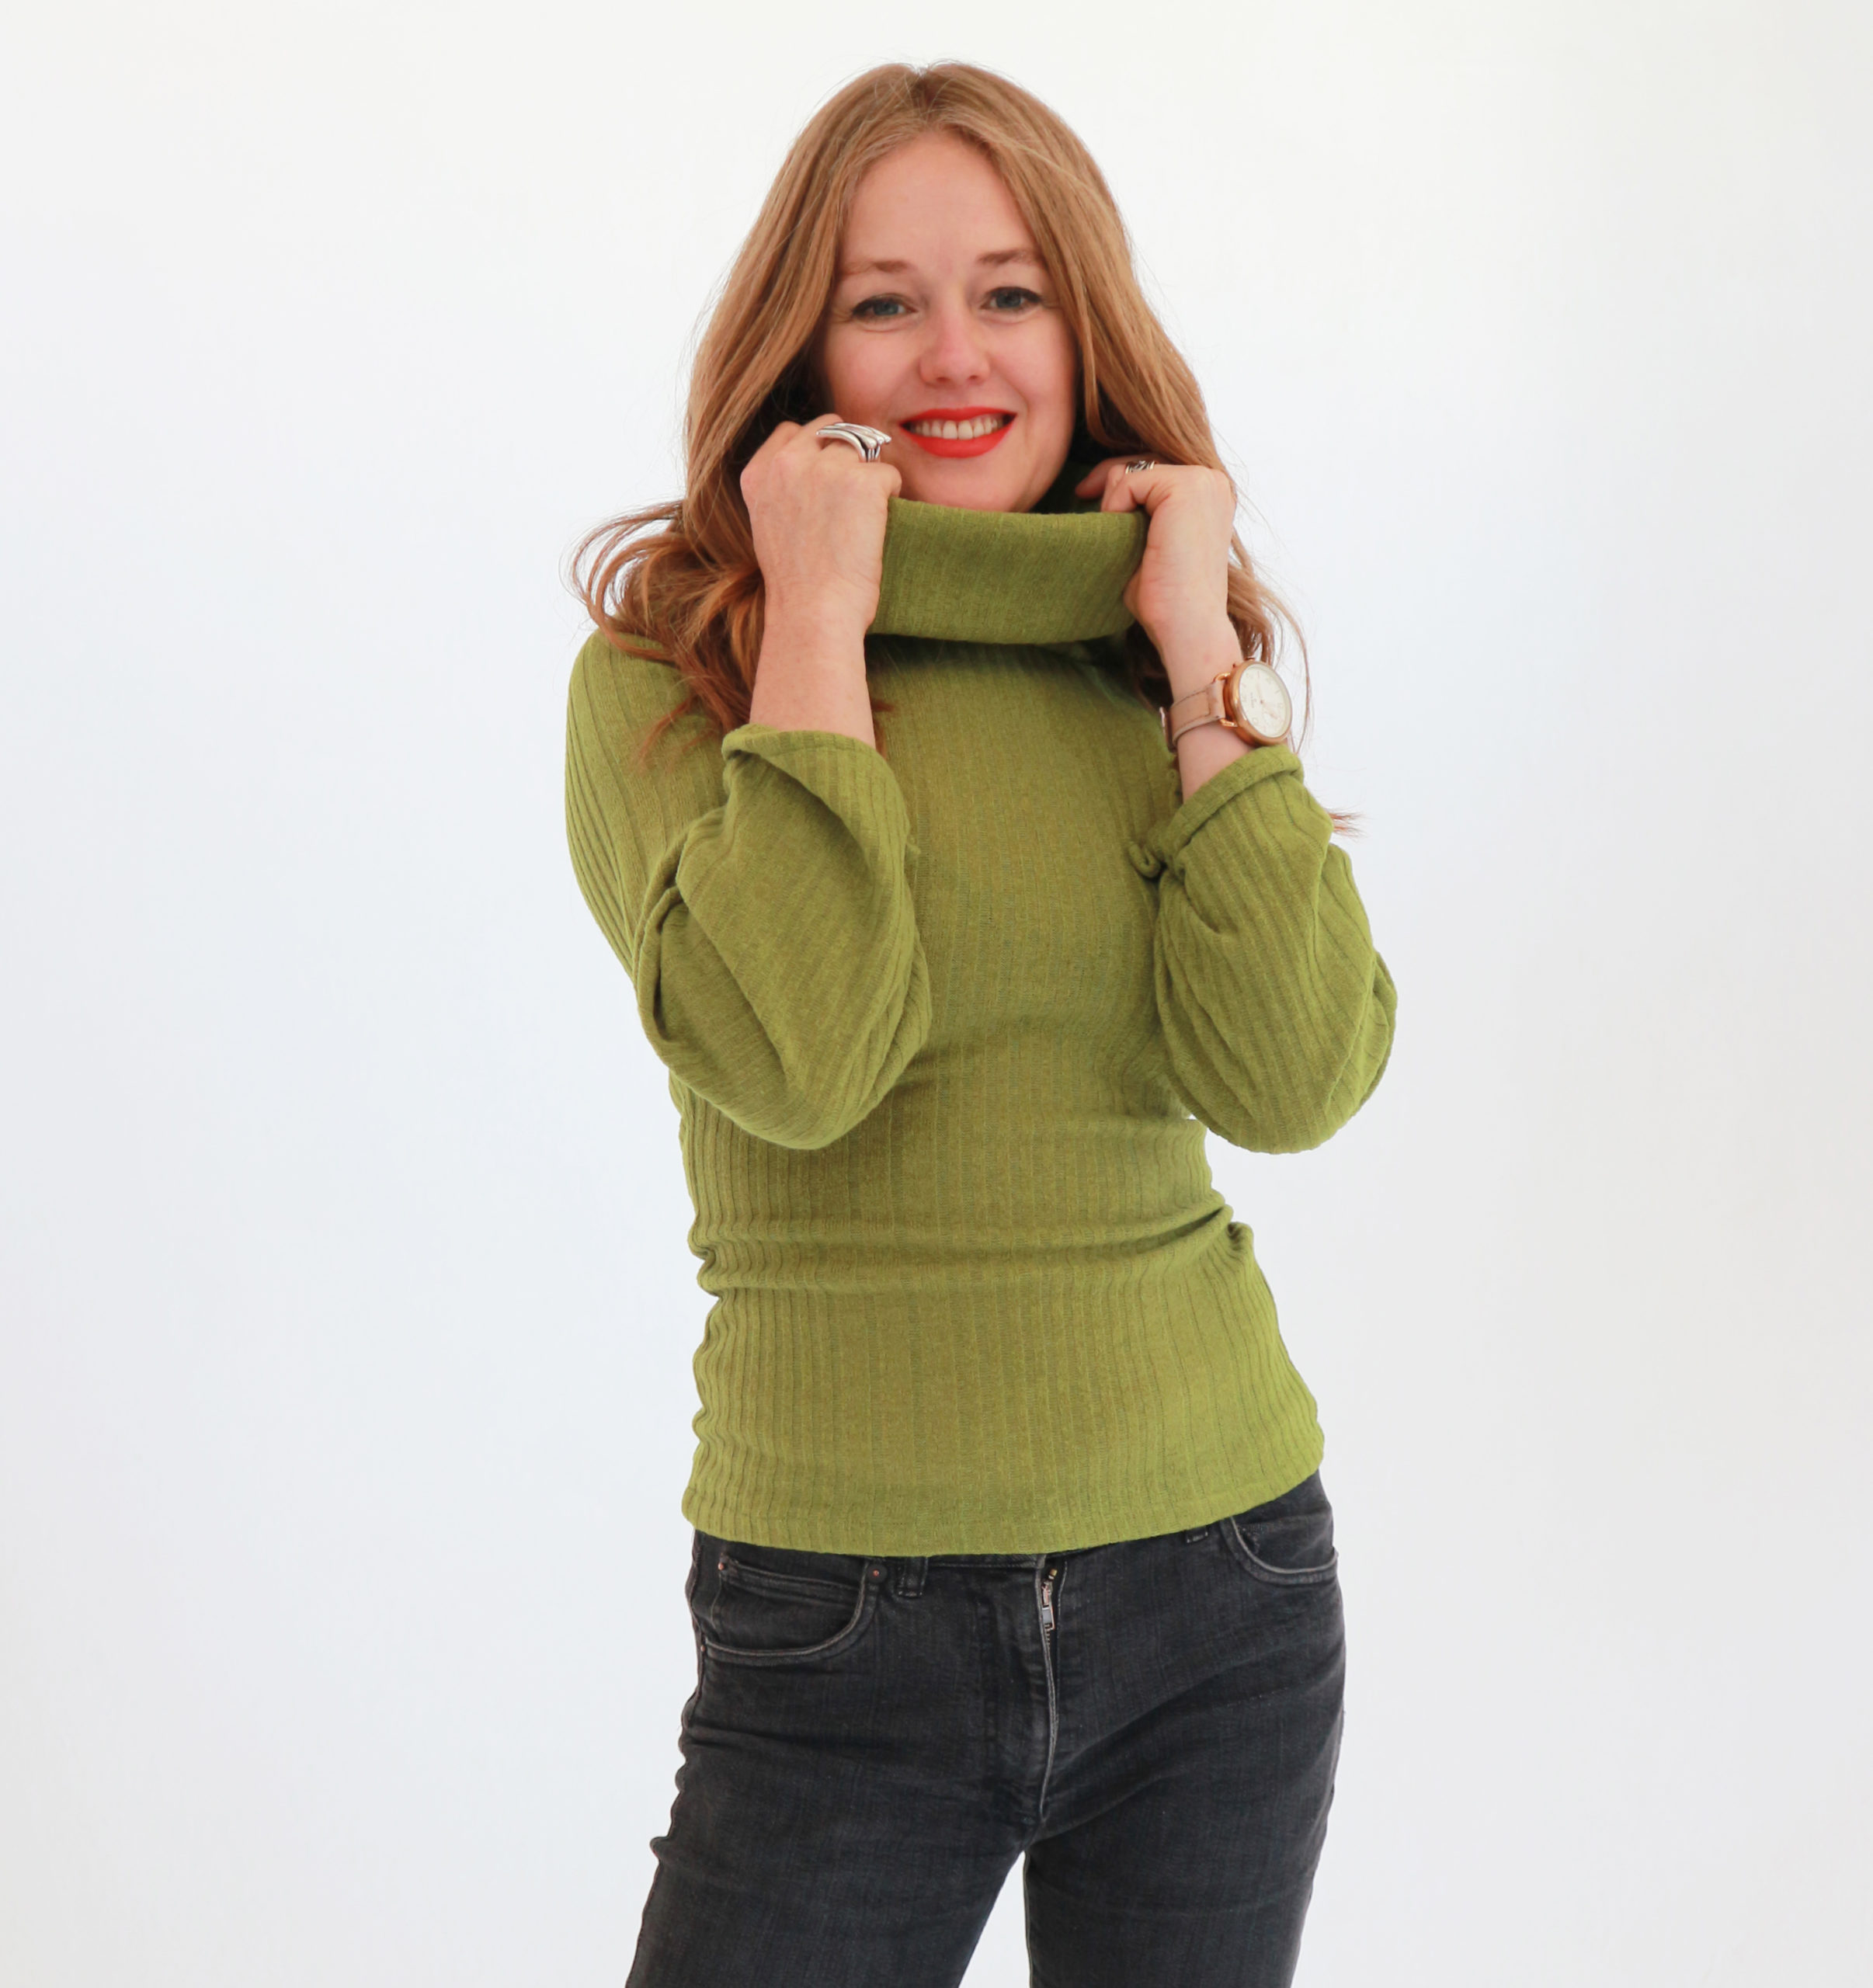 Chartreuse sweater - fashion for women over 40 - Tracy ...